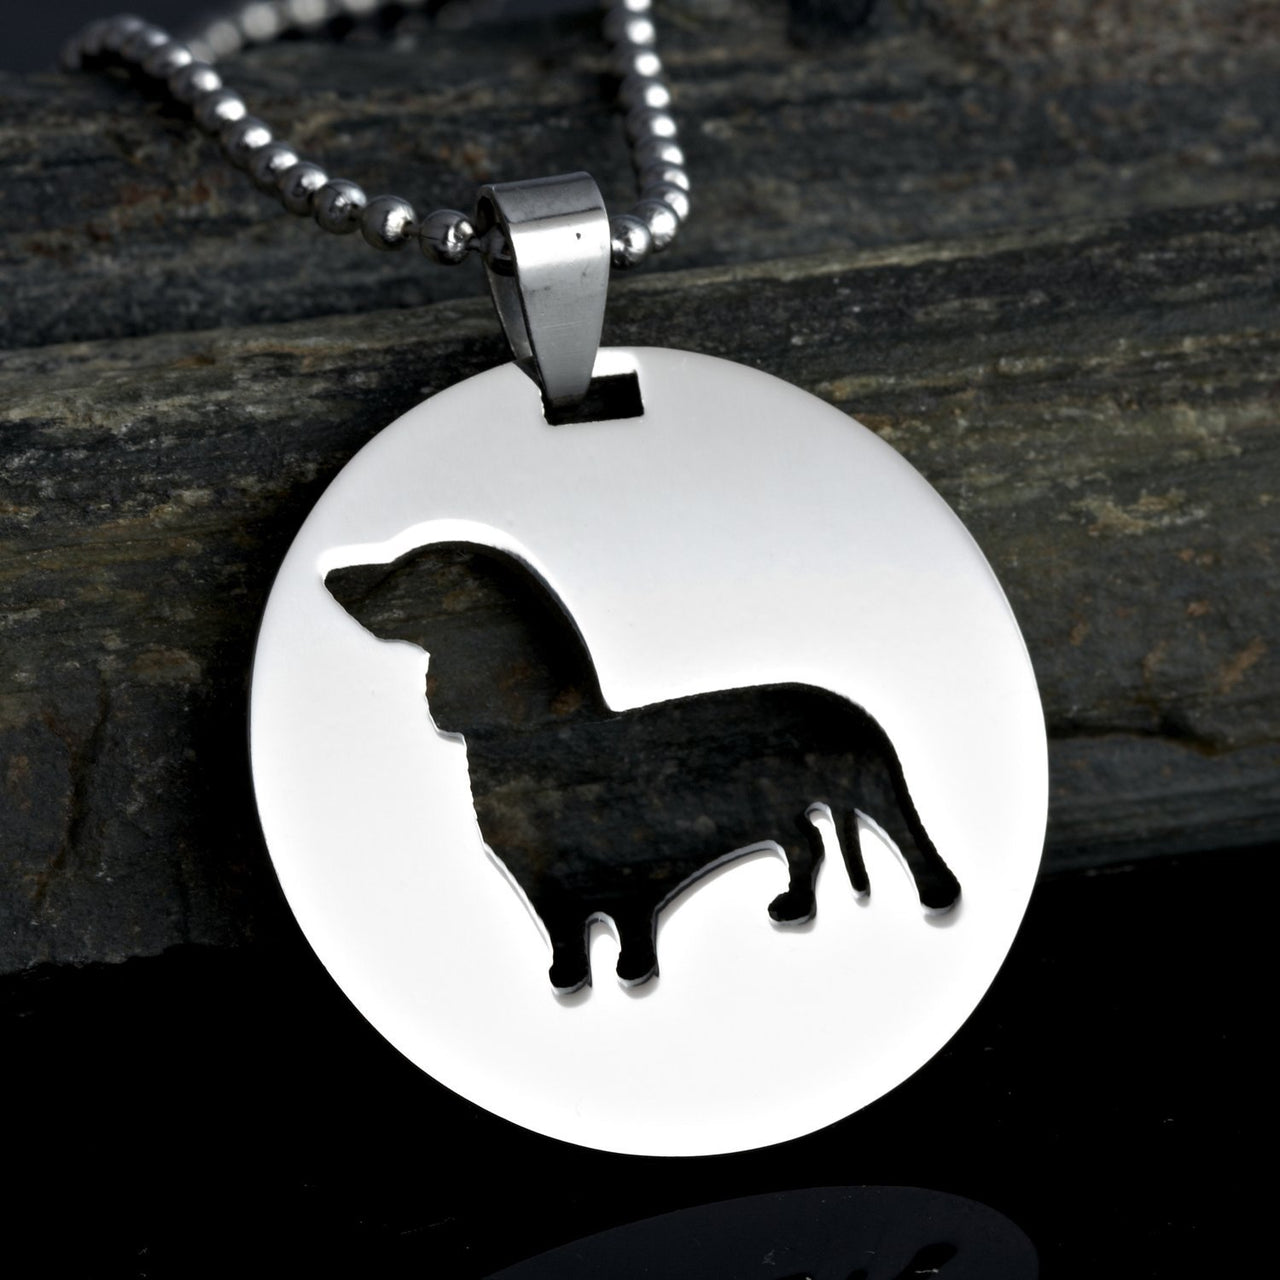 Stainless Steel Round Shape Dachshund Doxie Wiener Sausage Dog Silhouette Pet Dog Tag Breed Collar Charm Pendant Necklace Version 2